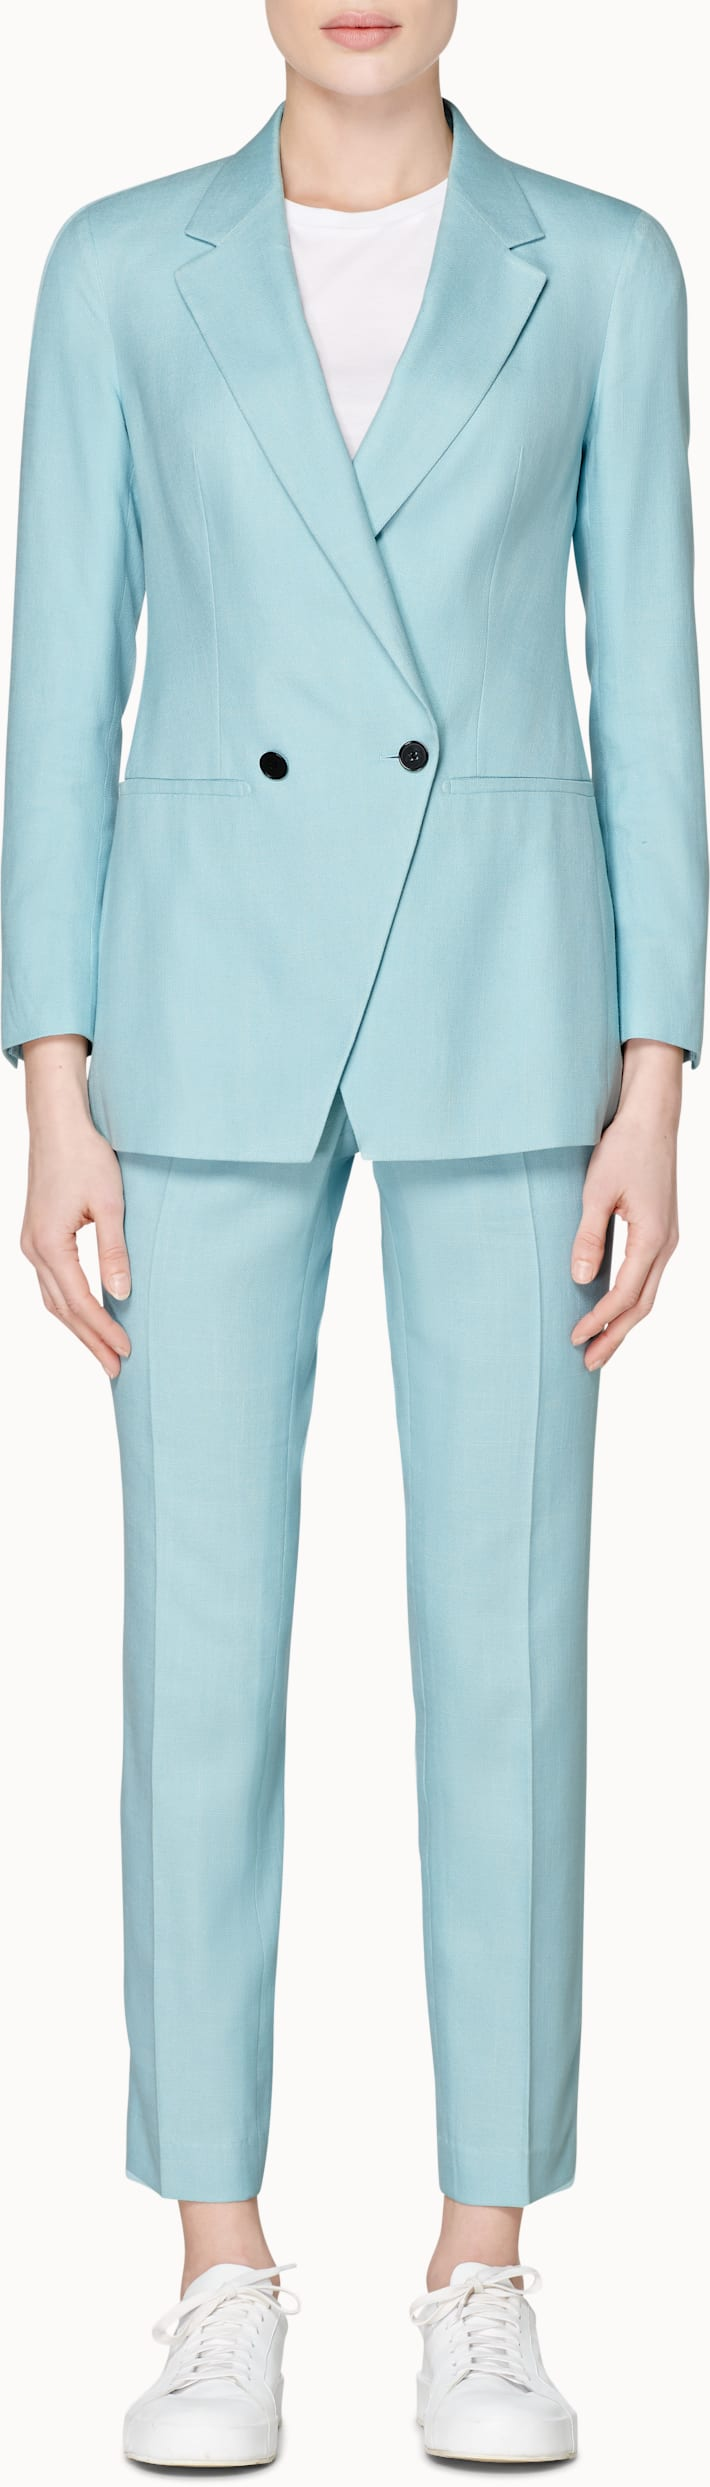 Cato Bright Blue Suit